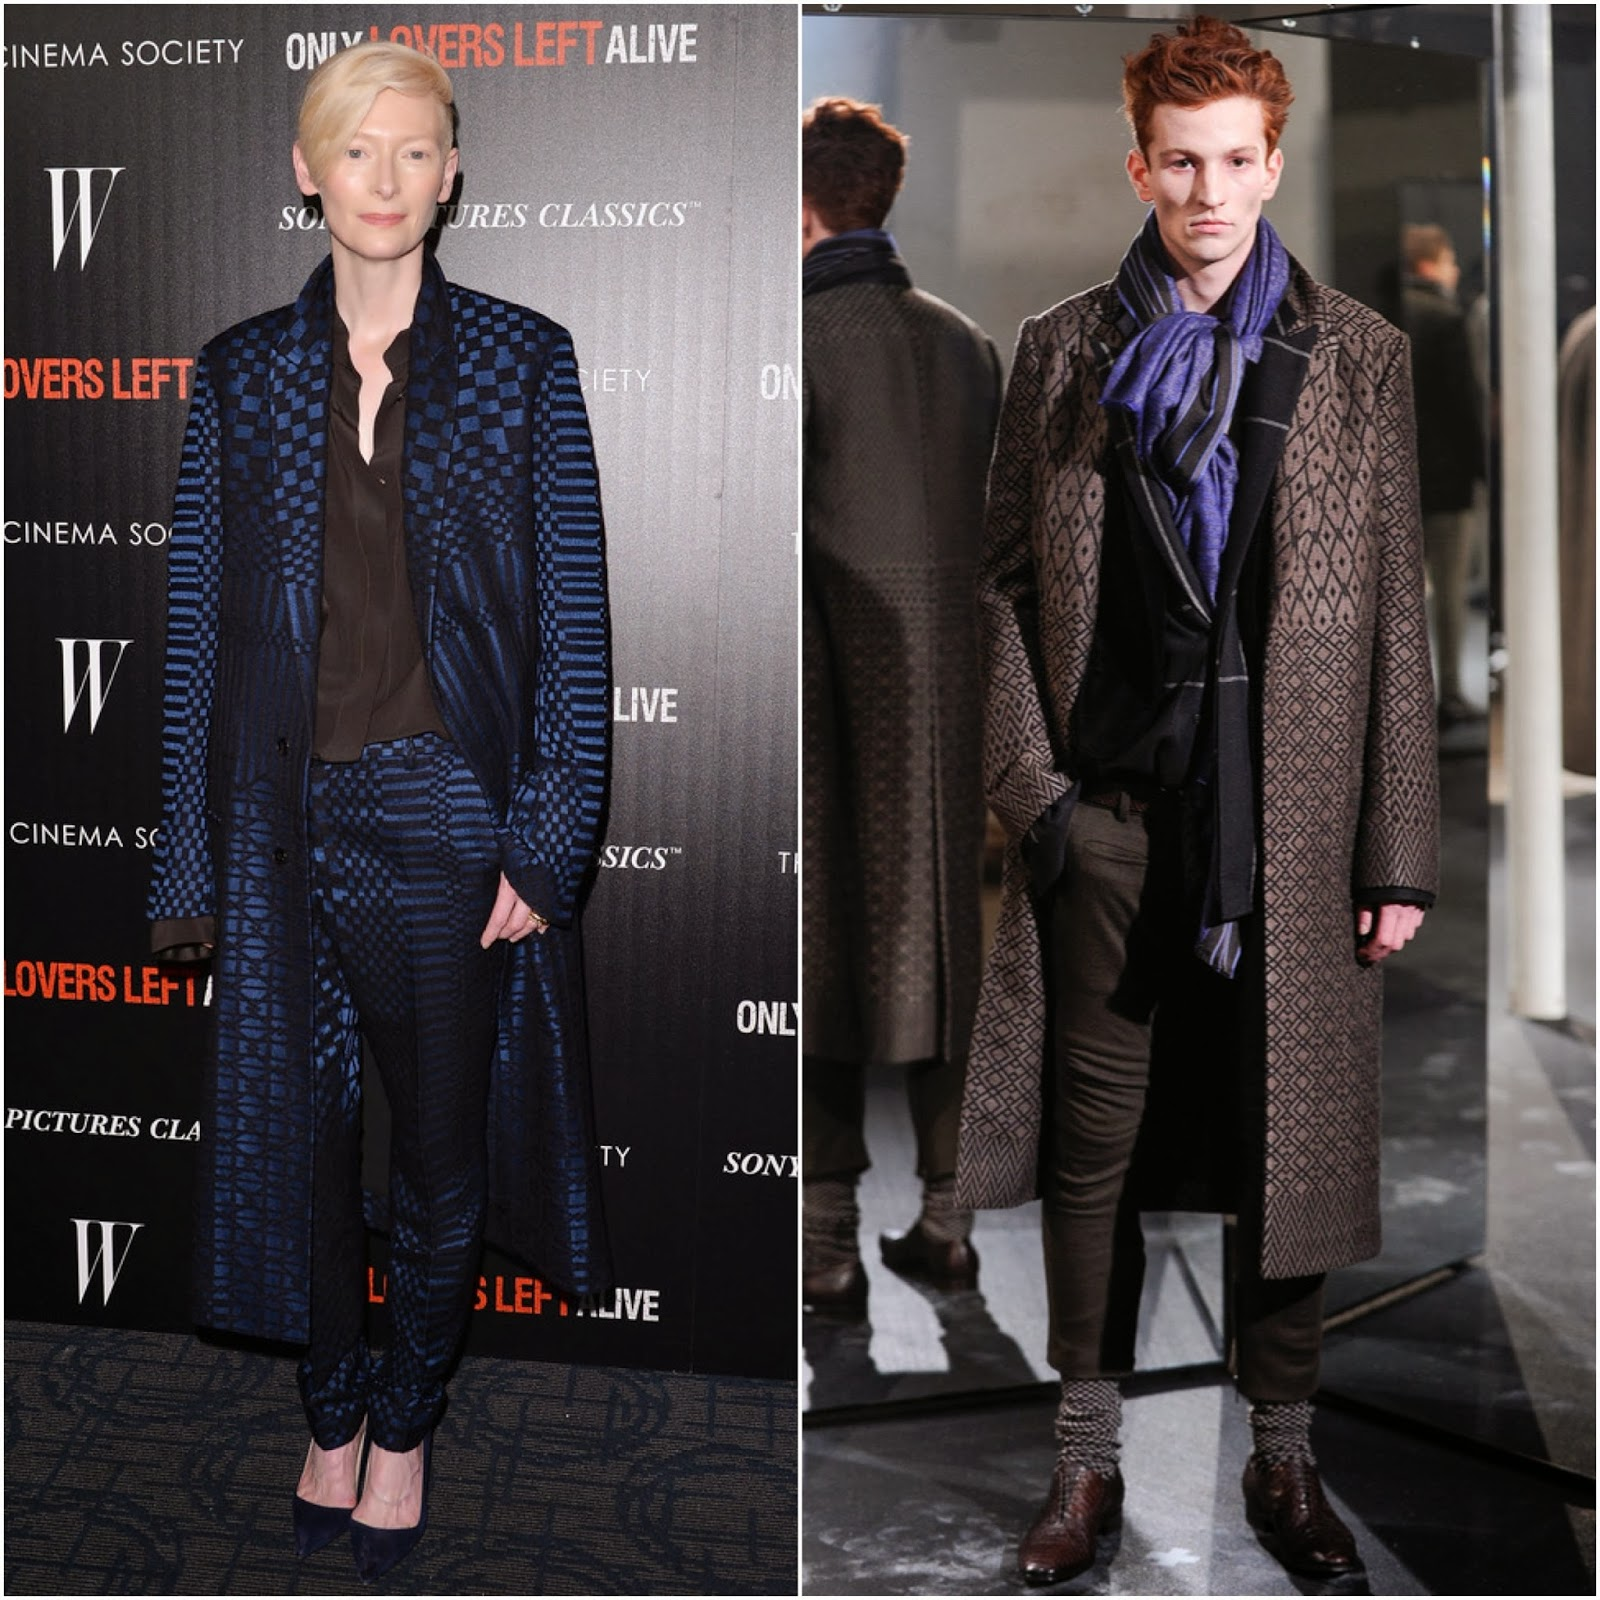 Tilda Swinton in Haider Ackermann - 'Only Lovers Left Alive' Screening